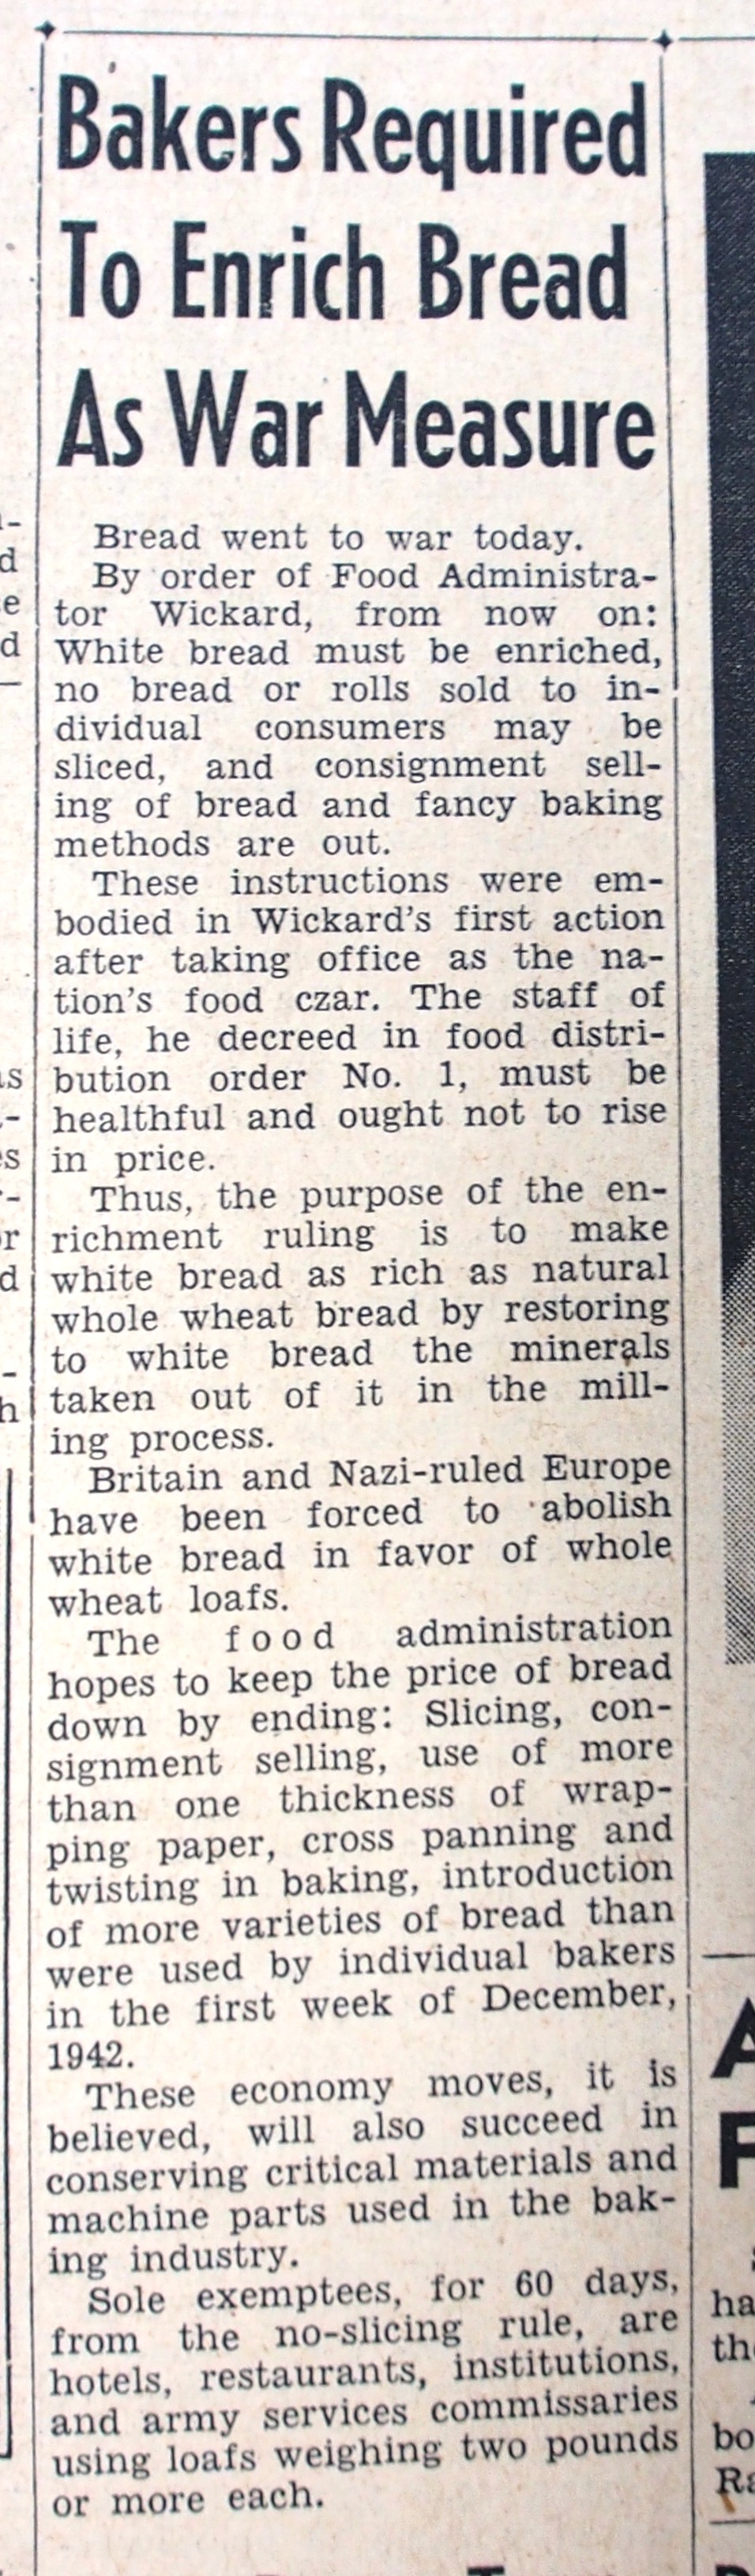 enriched bread 1943